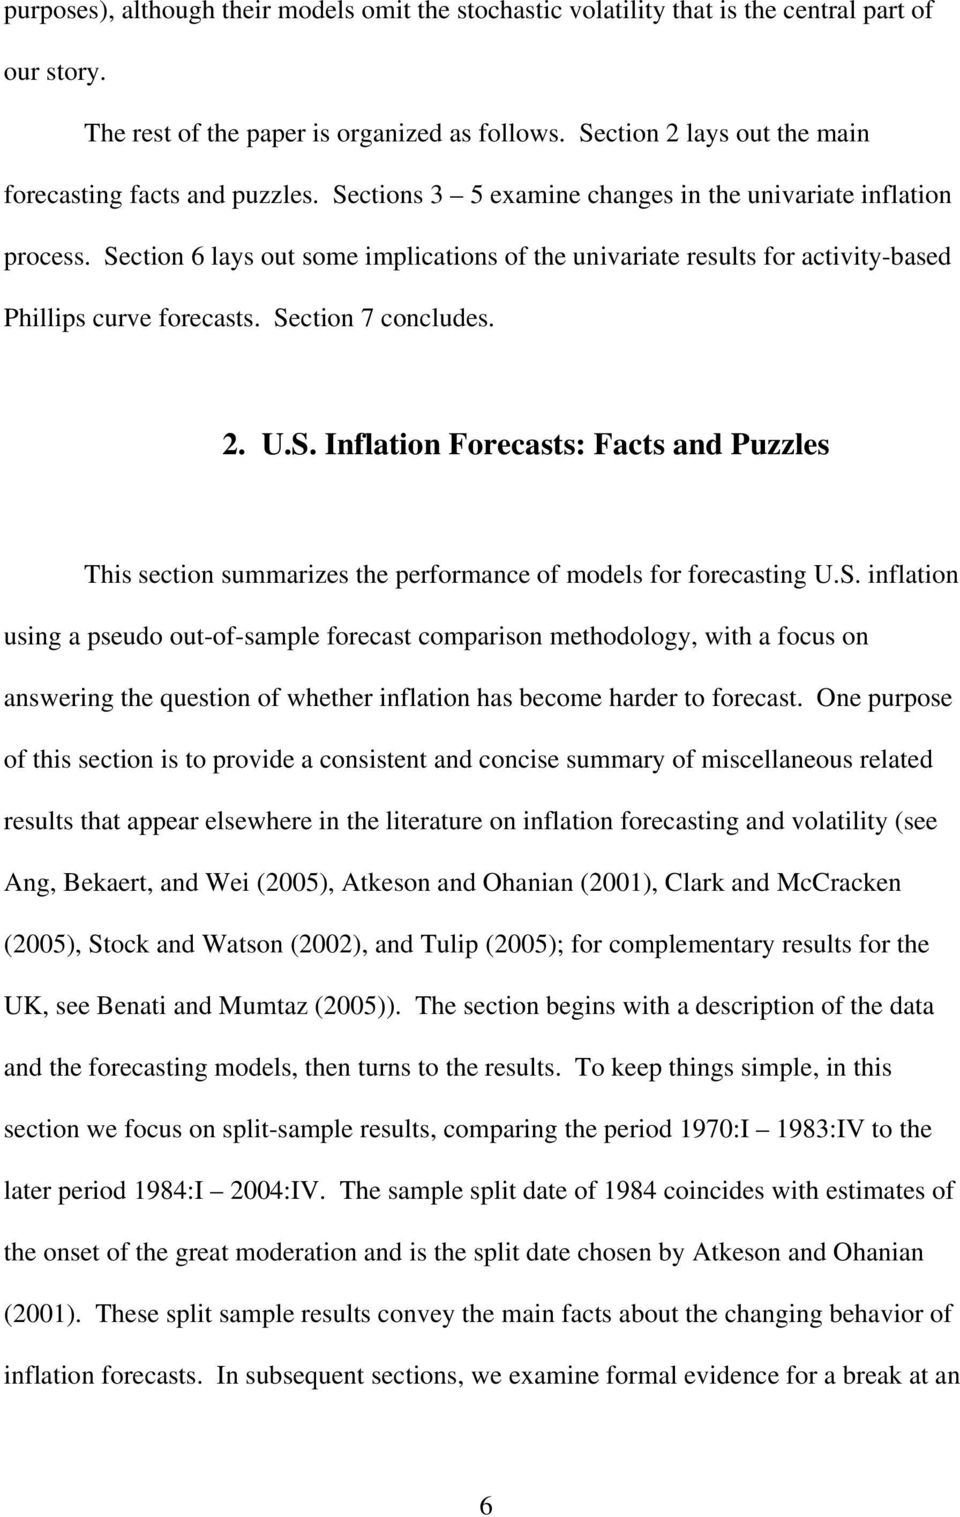 Section 6 lays out some implications of the univariate results for activity-based Phillips curve forecasts. Section 7 concludes. 2. U.S. Inflation Forecasts: Facts and Puzzles This section summarizes the performance of models for forecasting U.